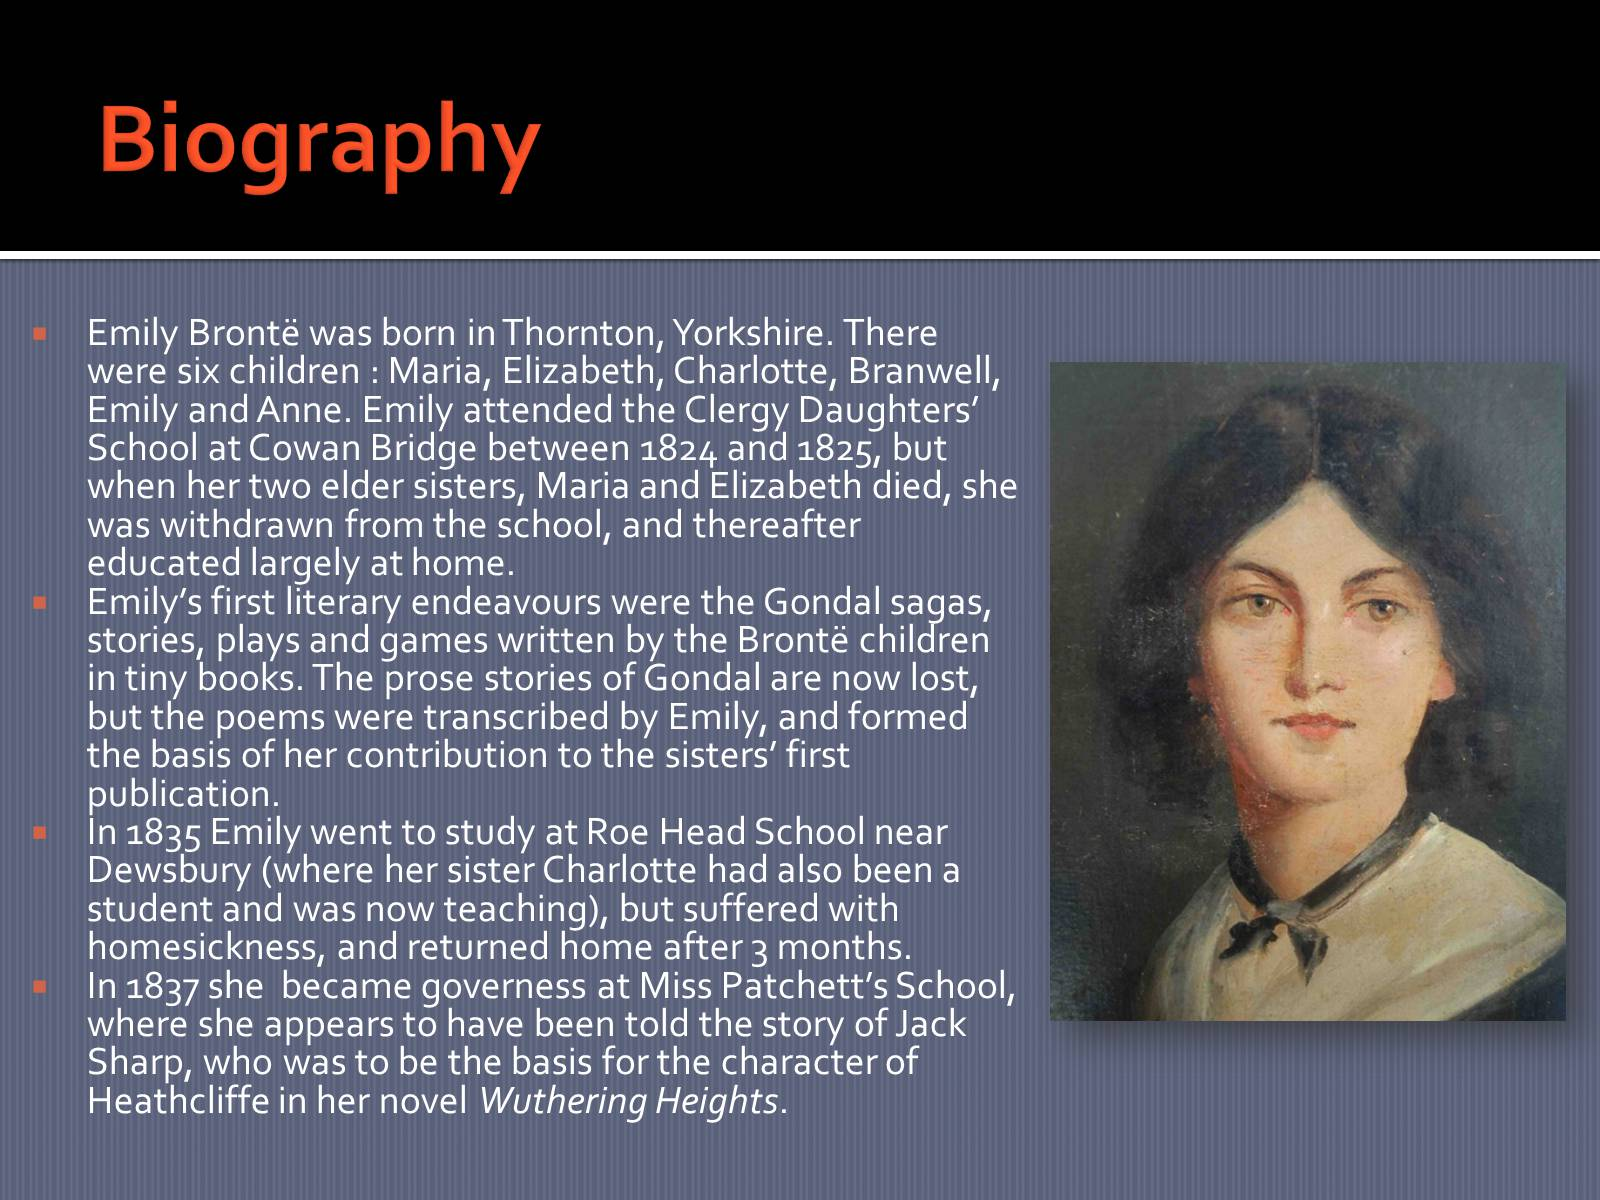 a biography of emily bronte an english author Engaging biography spoiled in last pages by rampant speculative psycho-analysis of the cause of bronte's death (she claimed it was psychosomatic and bronte wanted death) i also found myself becoming increasingly sceptical at the idea bronte was a 'mystic.